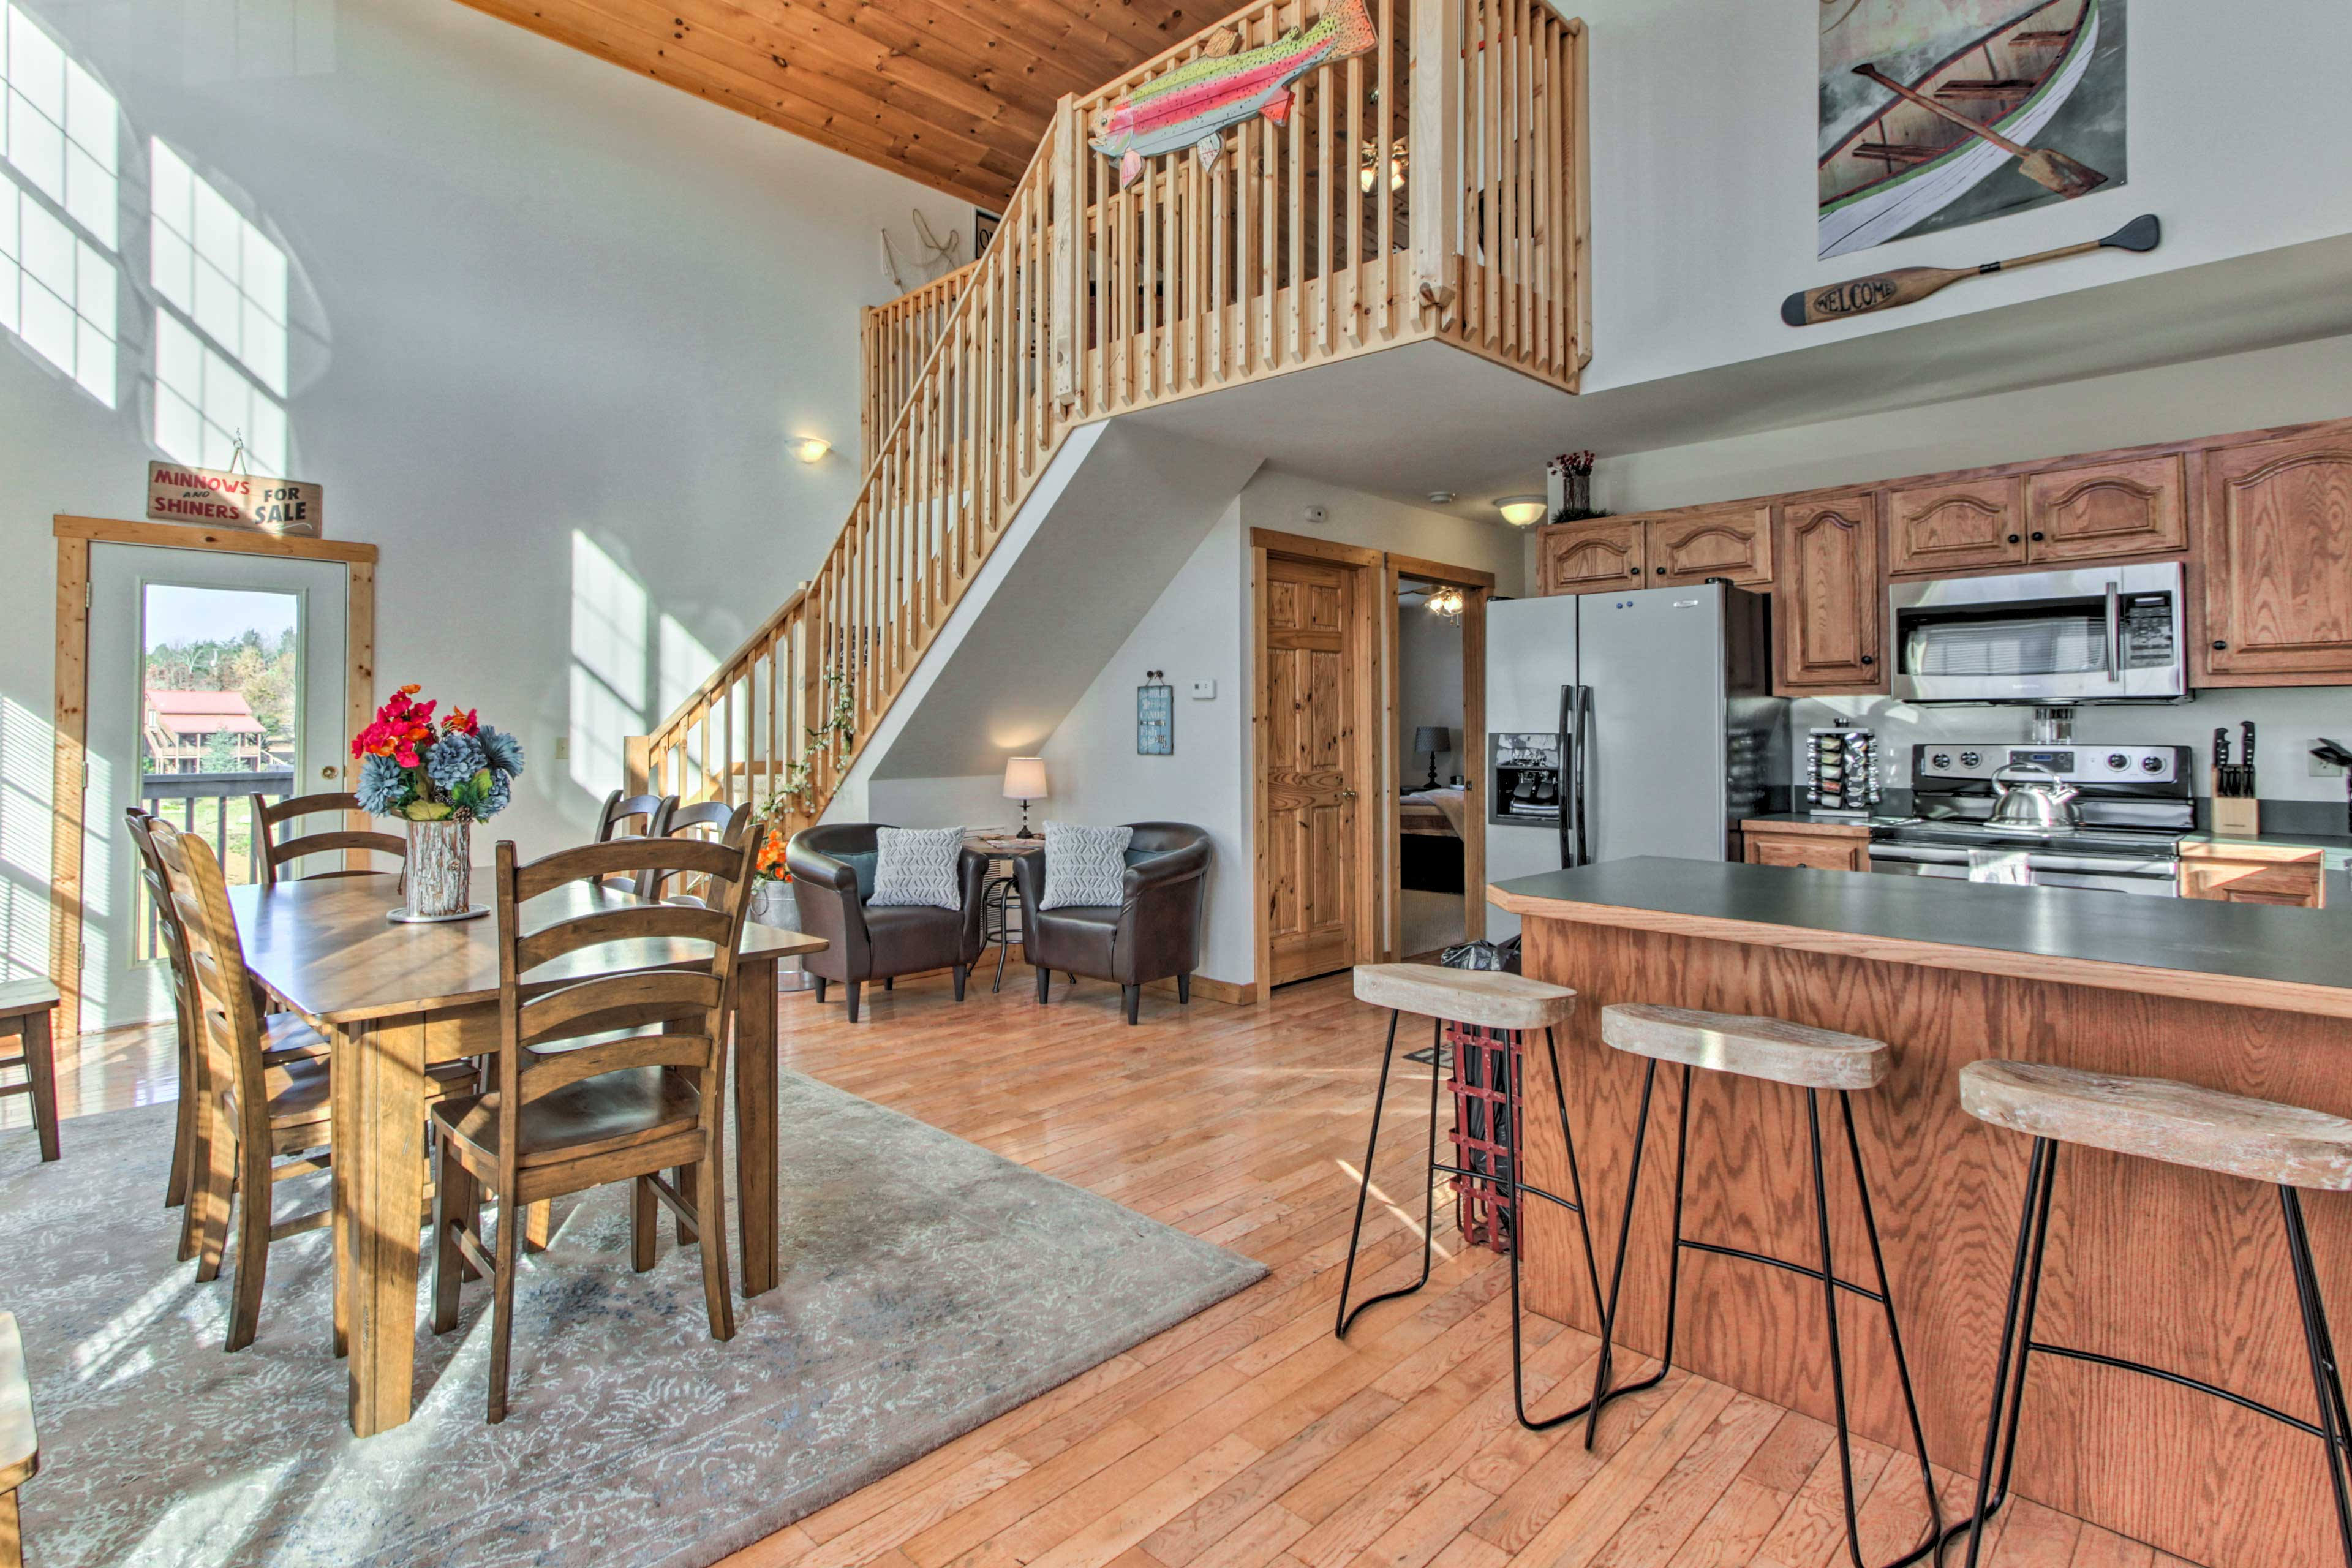 This cabin-style house features 2 bedrooms, 2.5 bathrooms, and room for 5.